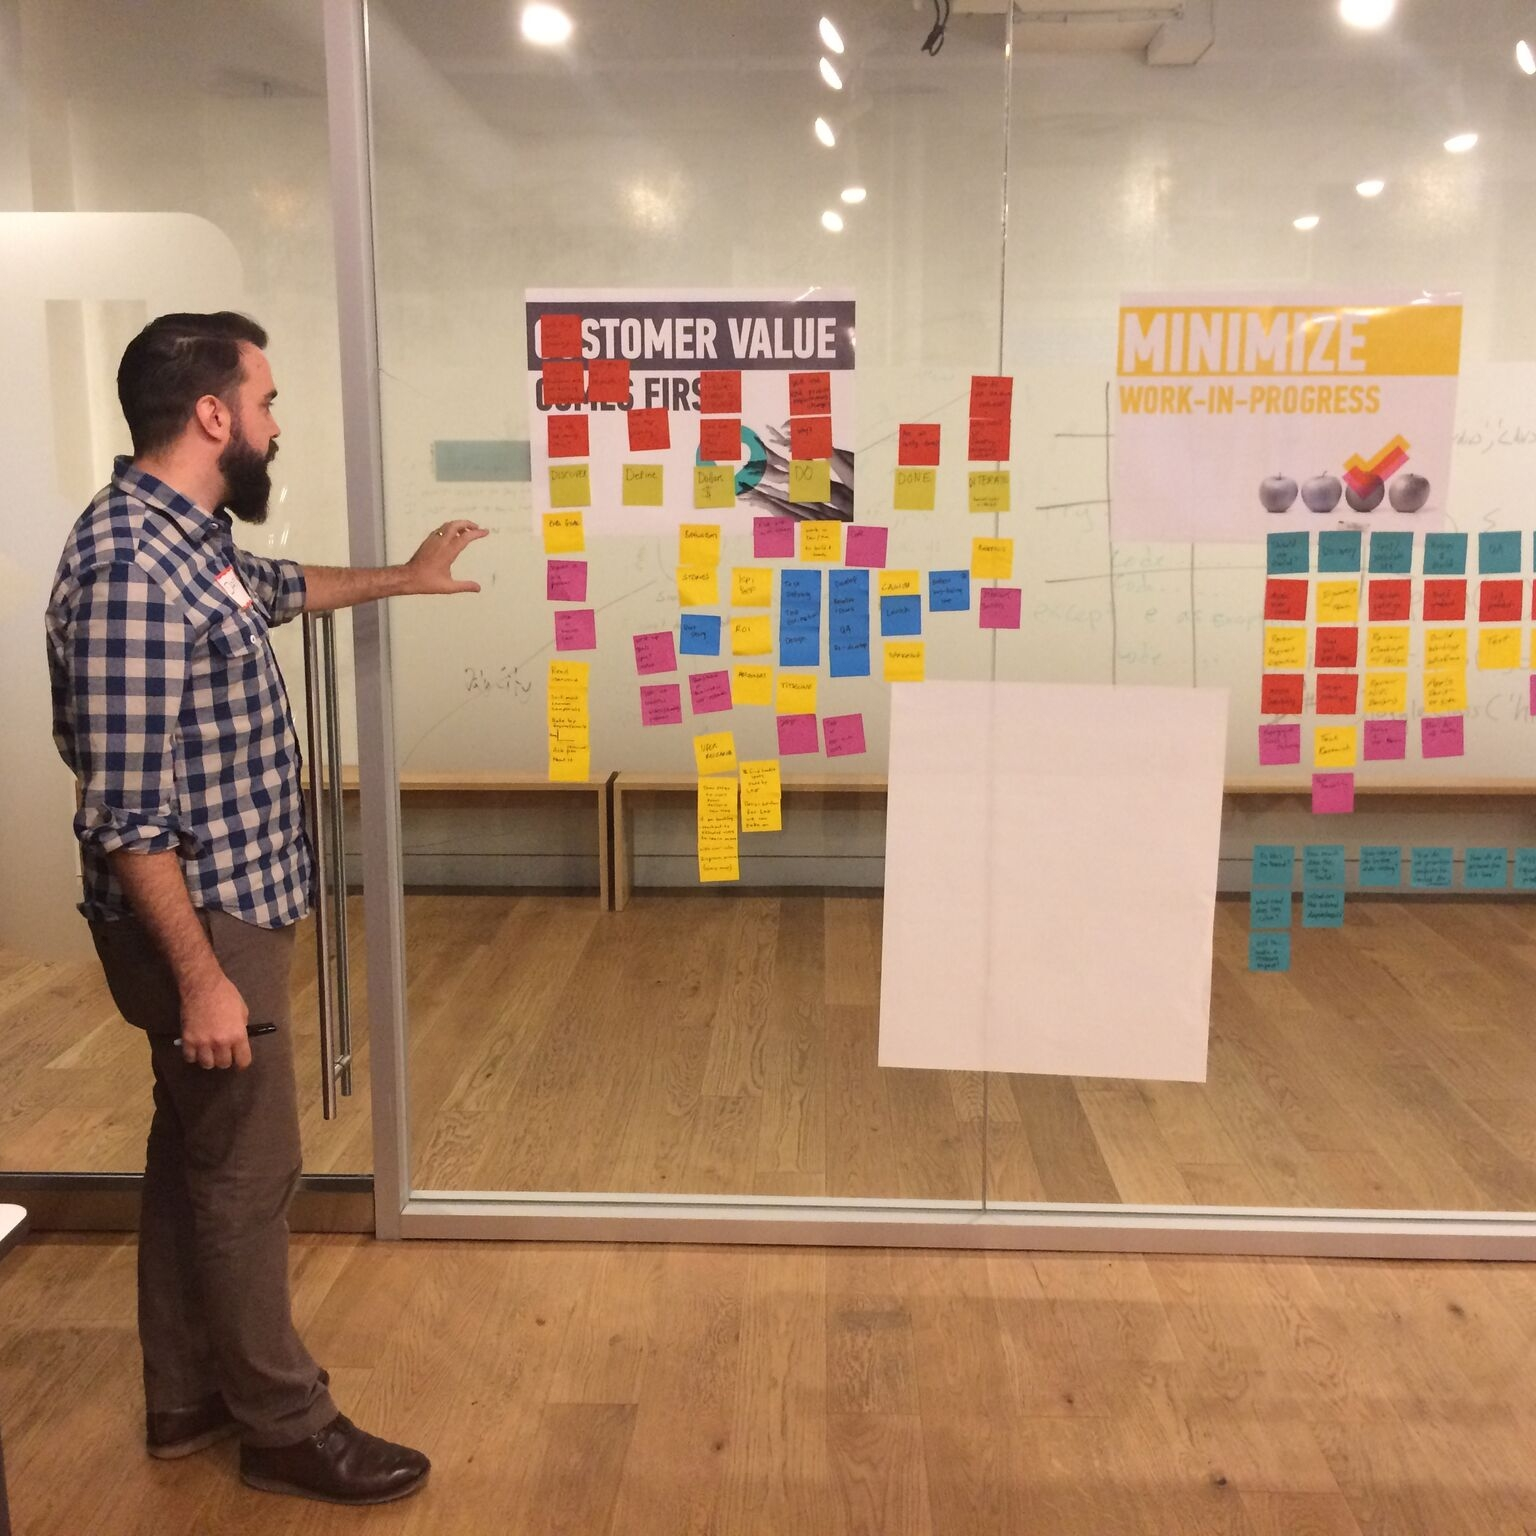 Partnering with Leading Consultancies - CASE STUDY: The Design Gym, General Assembly